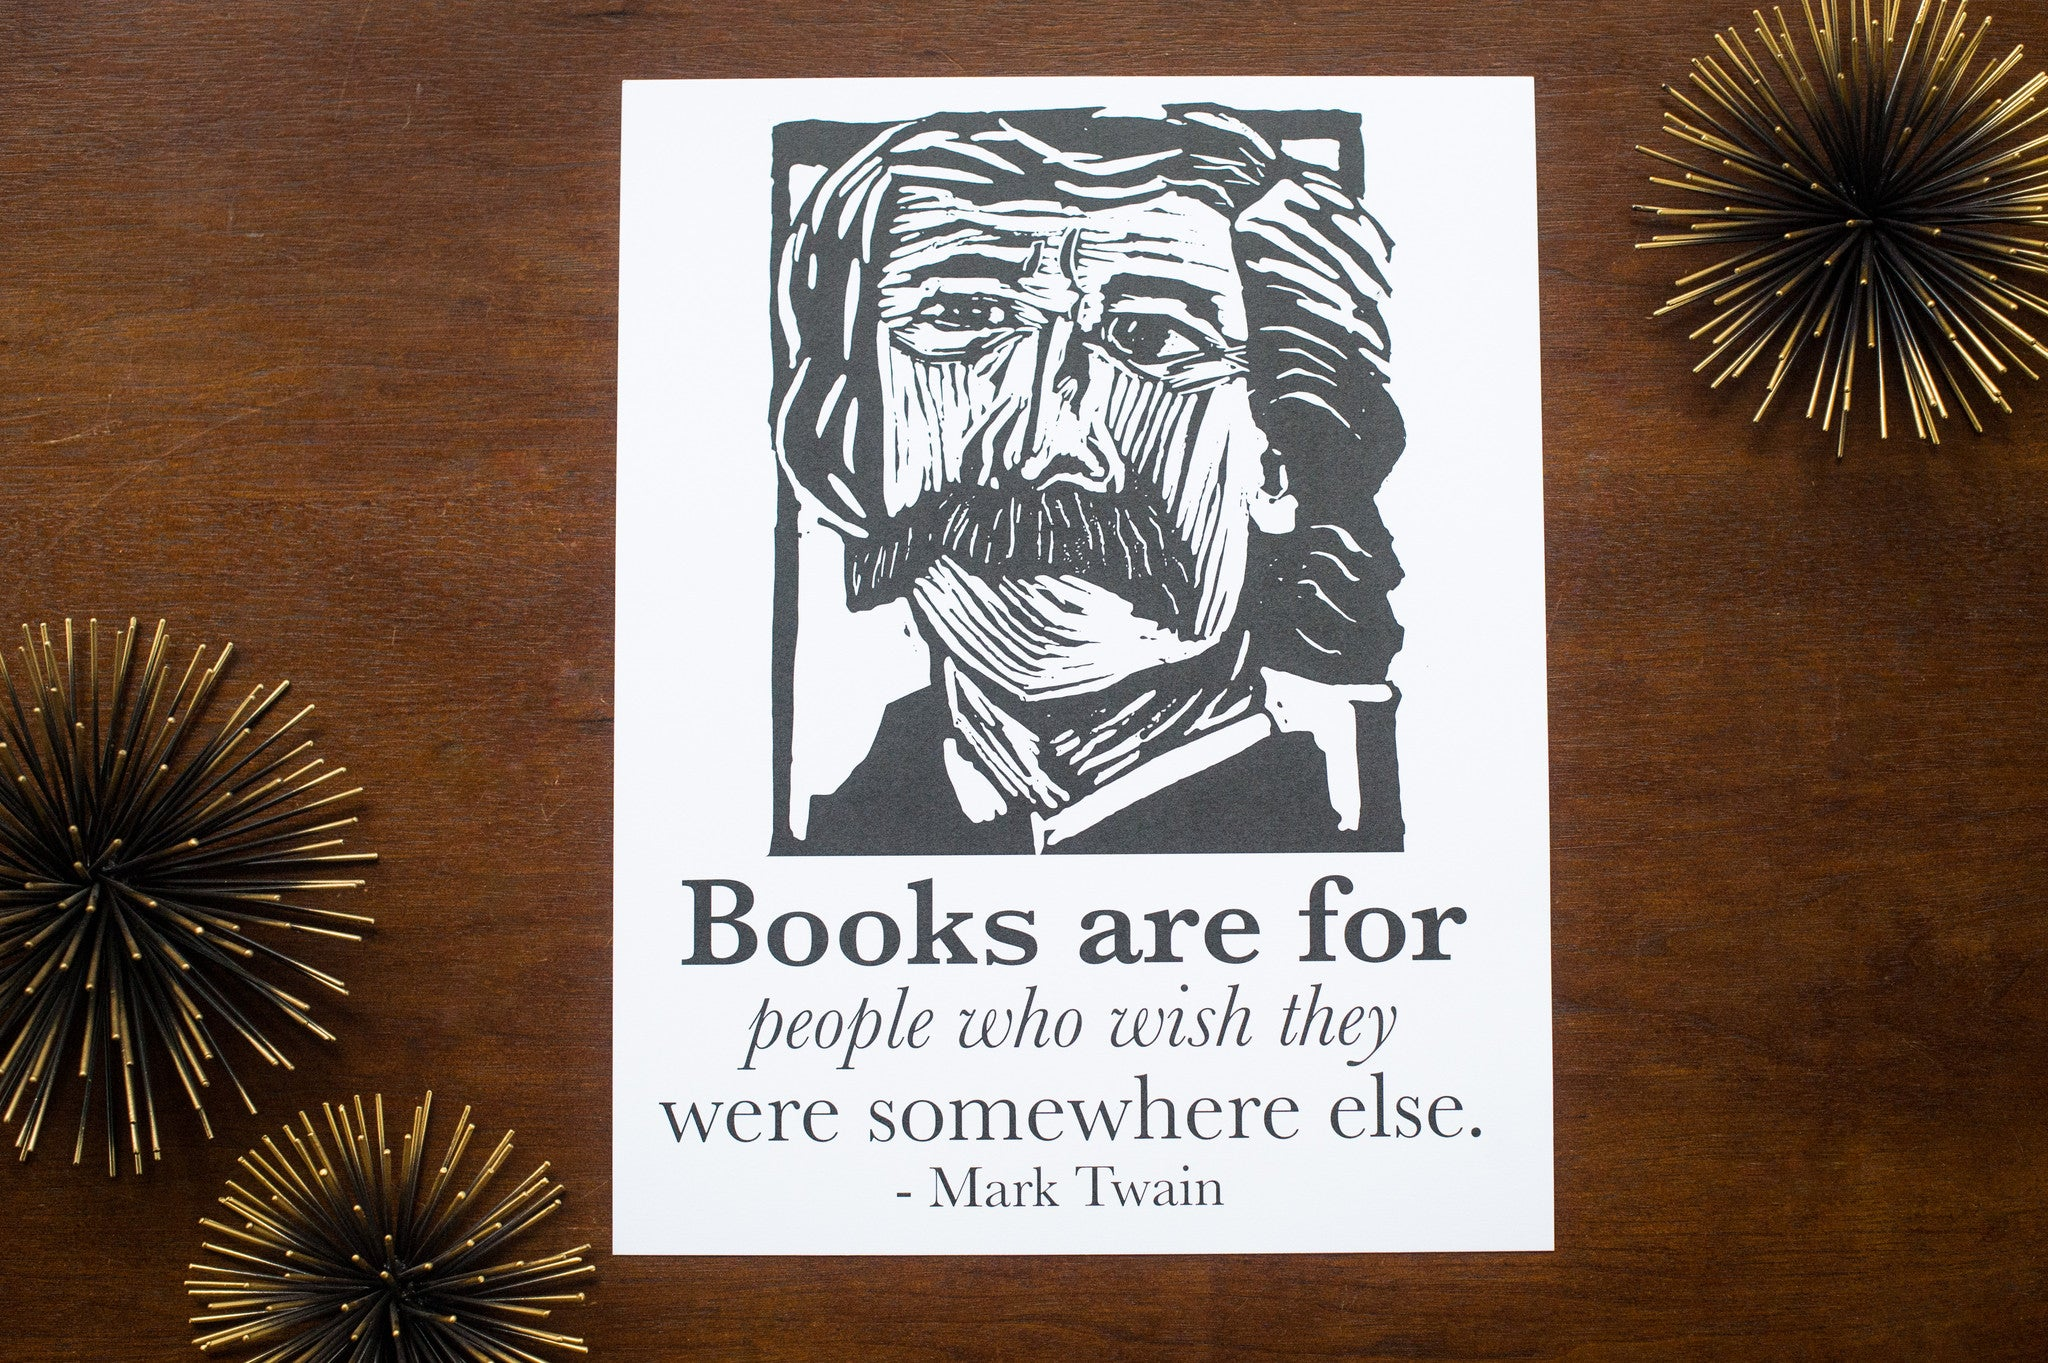 Mark Twain Art Print poster with quote Literary gift by Eastgrove Studio